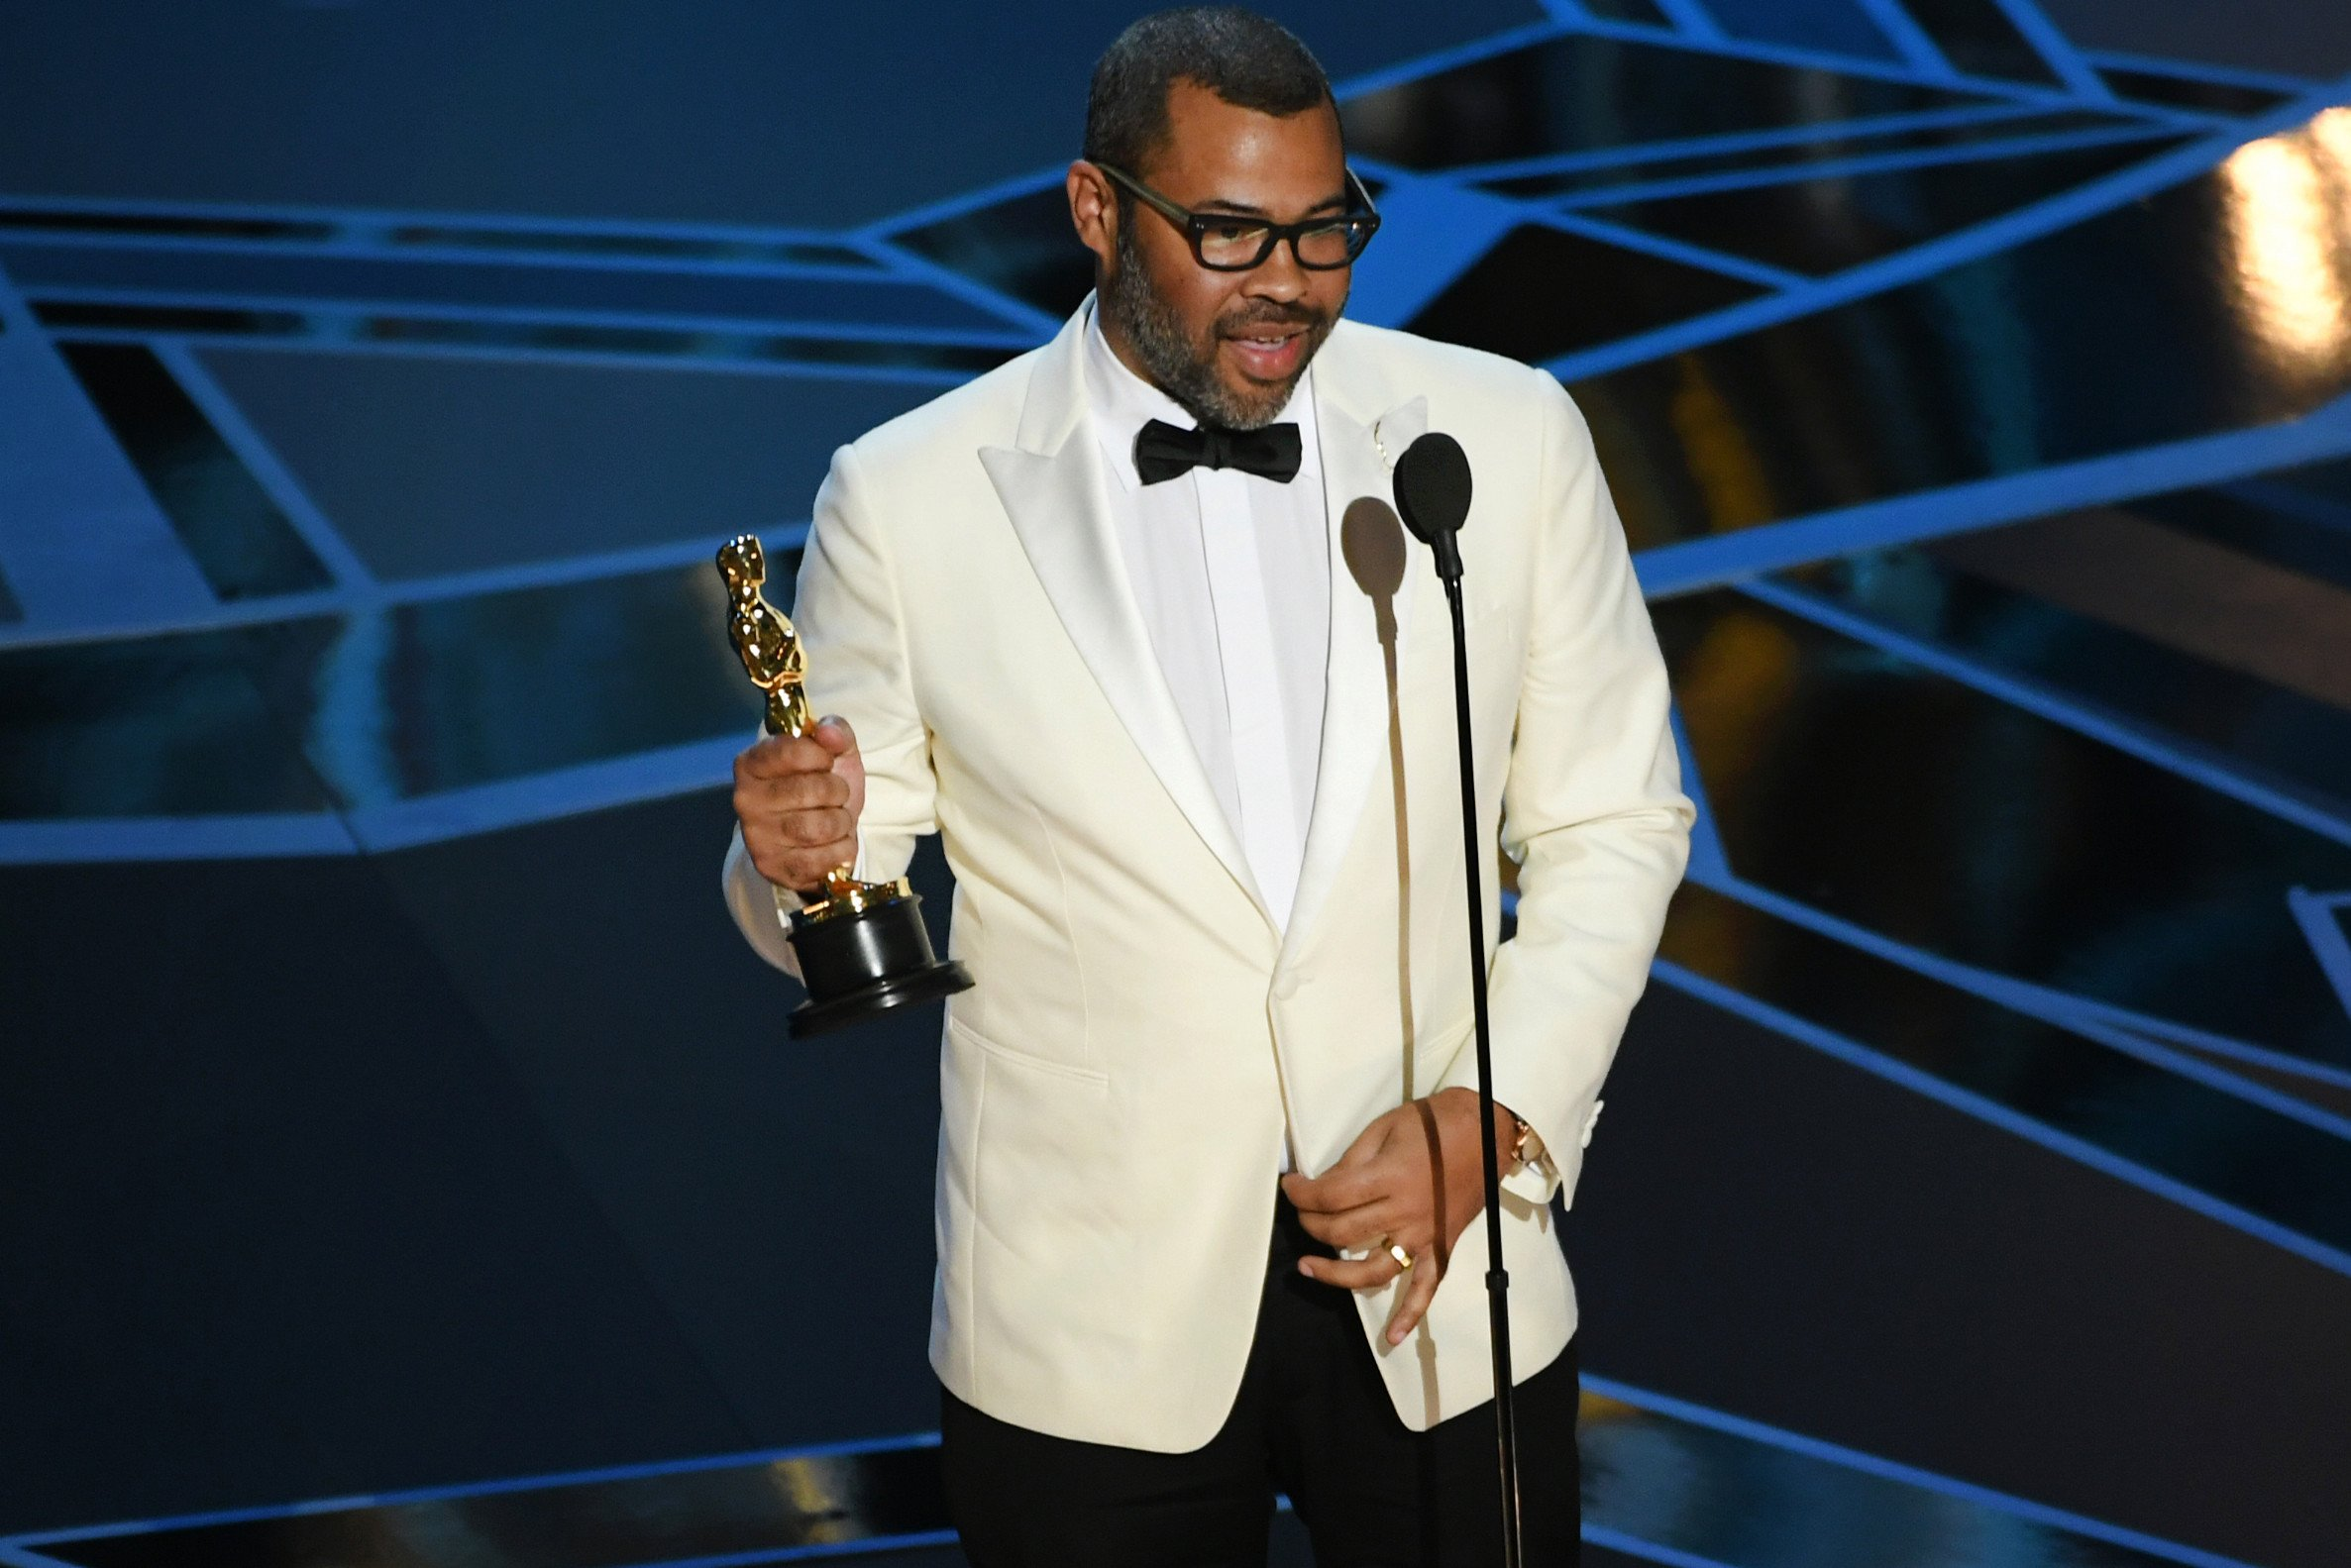 Jordan Peele makes history with 'Get Out' win